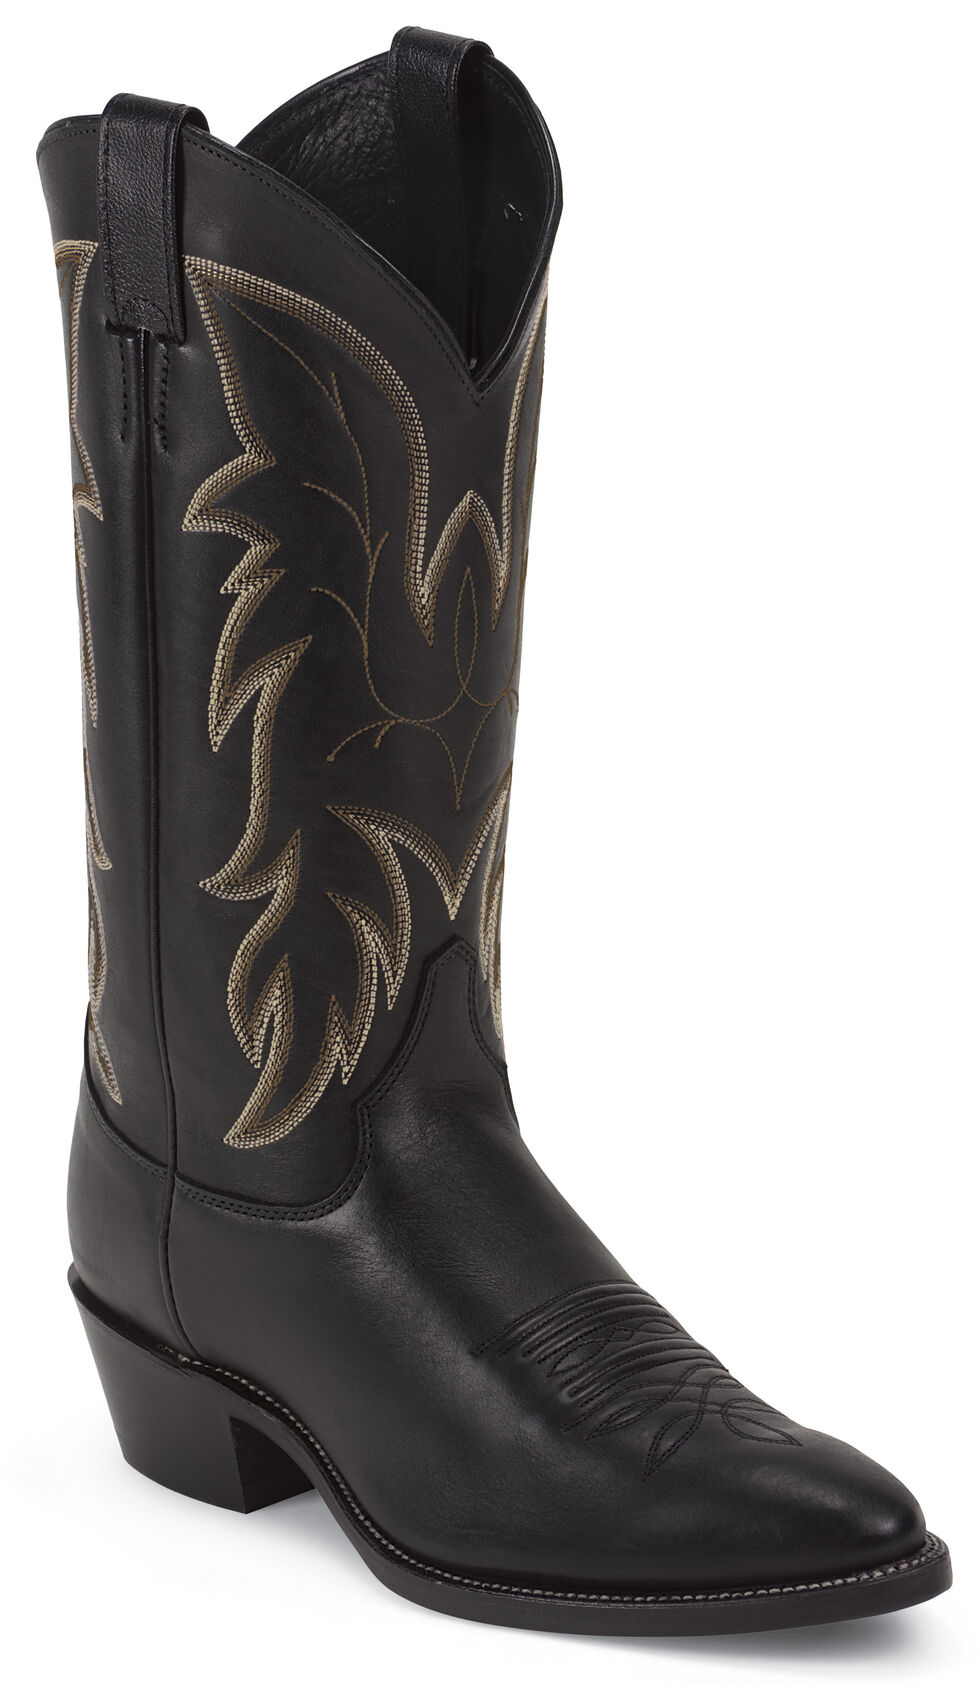 Justin Black Basic Western Boots - Medium Toe, Black, hi-res